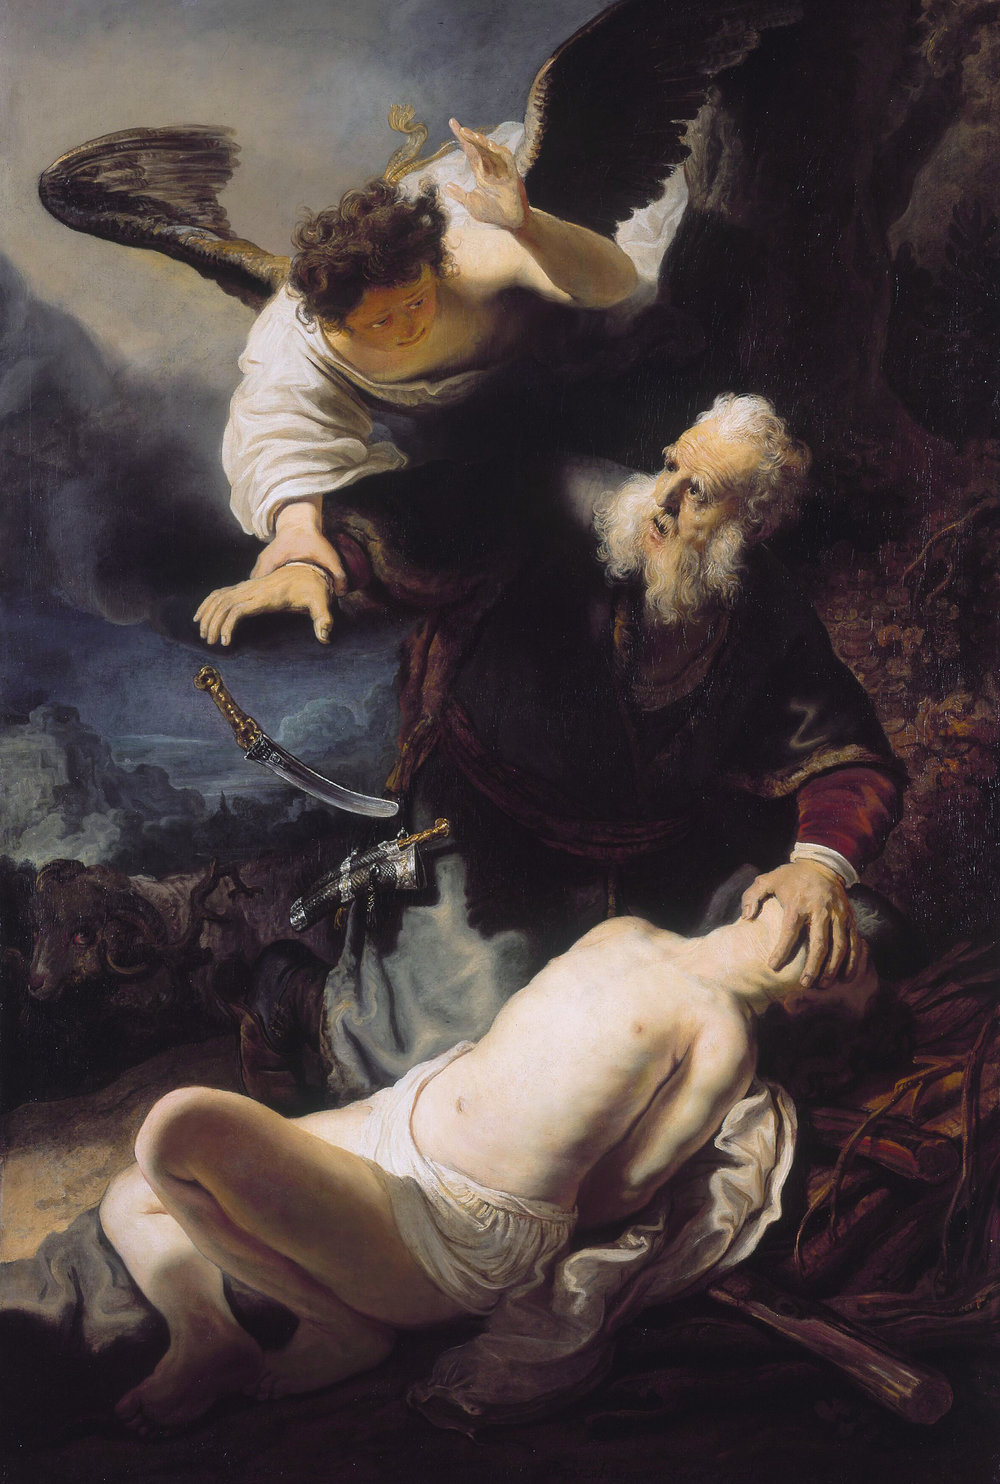 The Sacrifice of Isaac, by Rembrandt, 1635